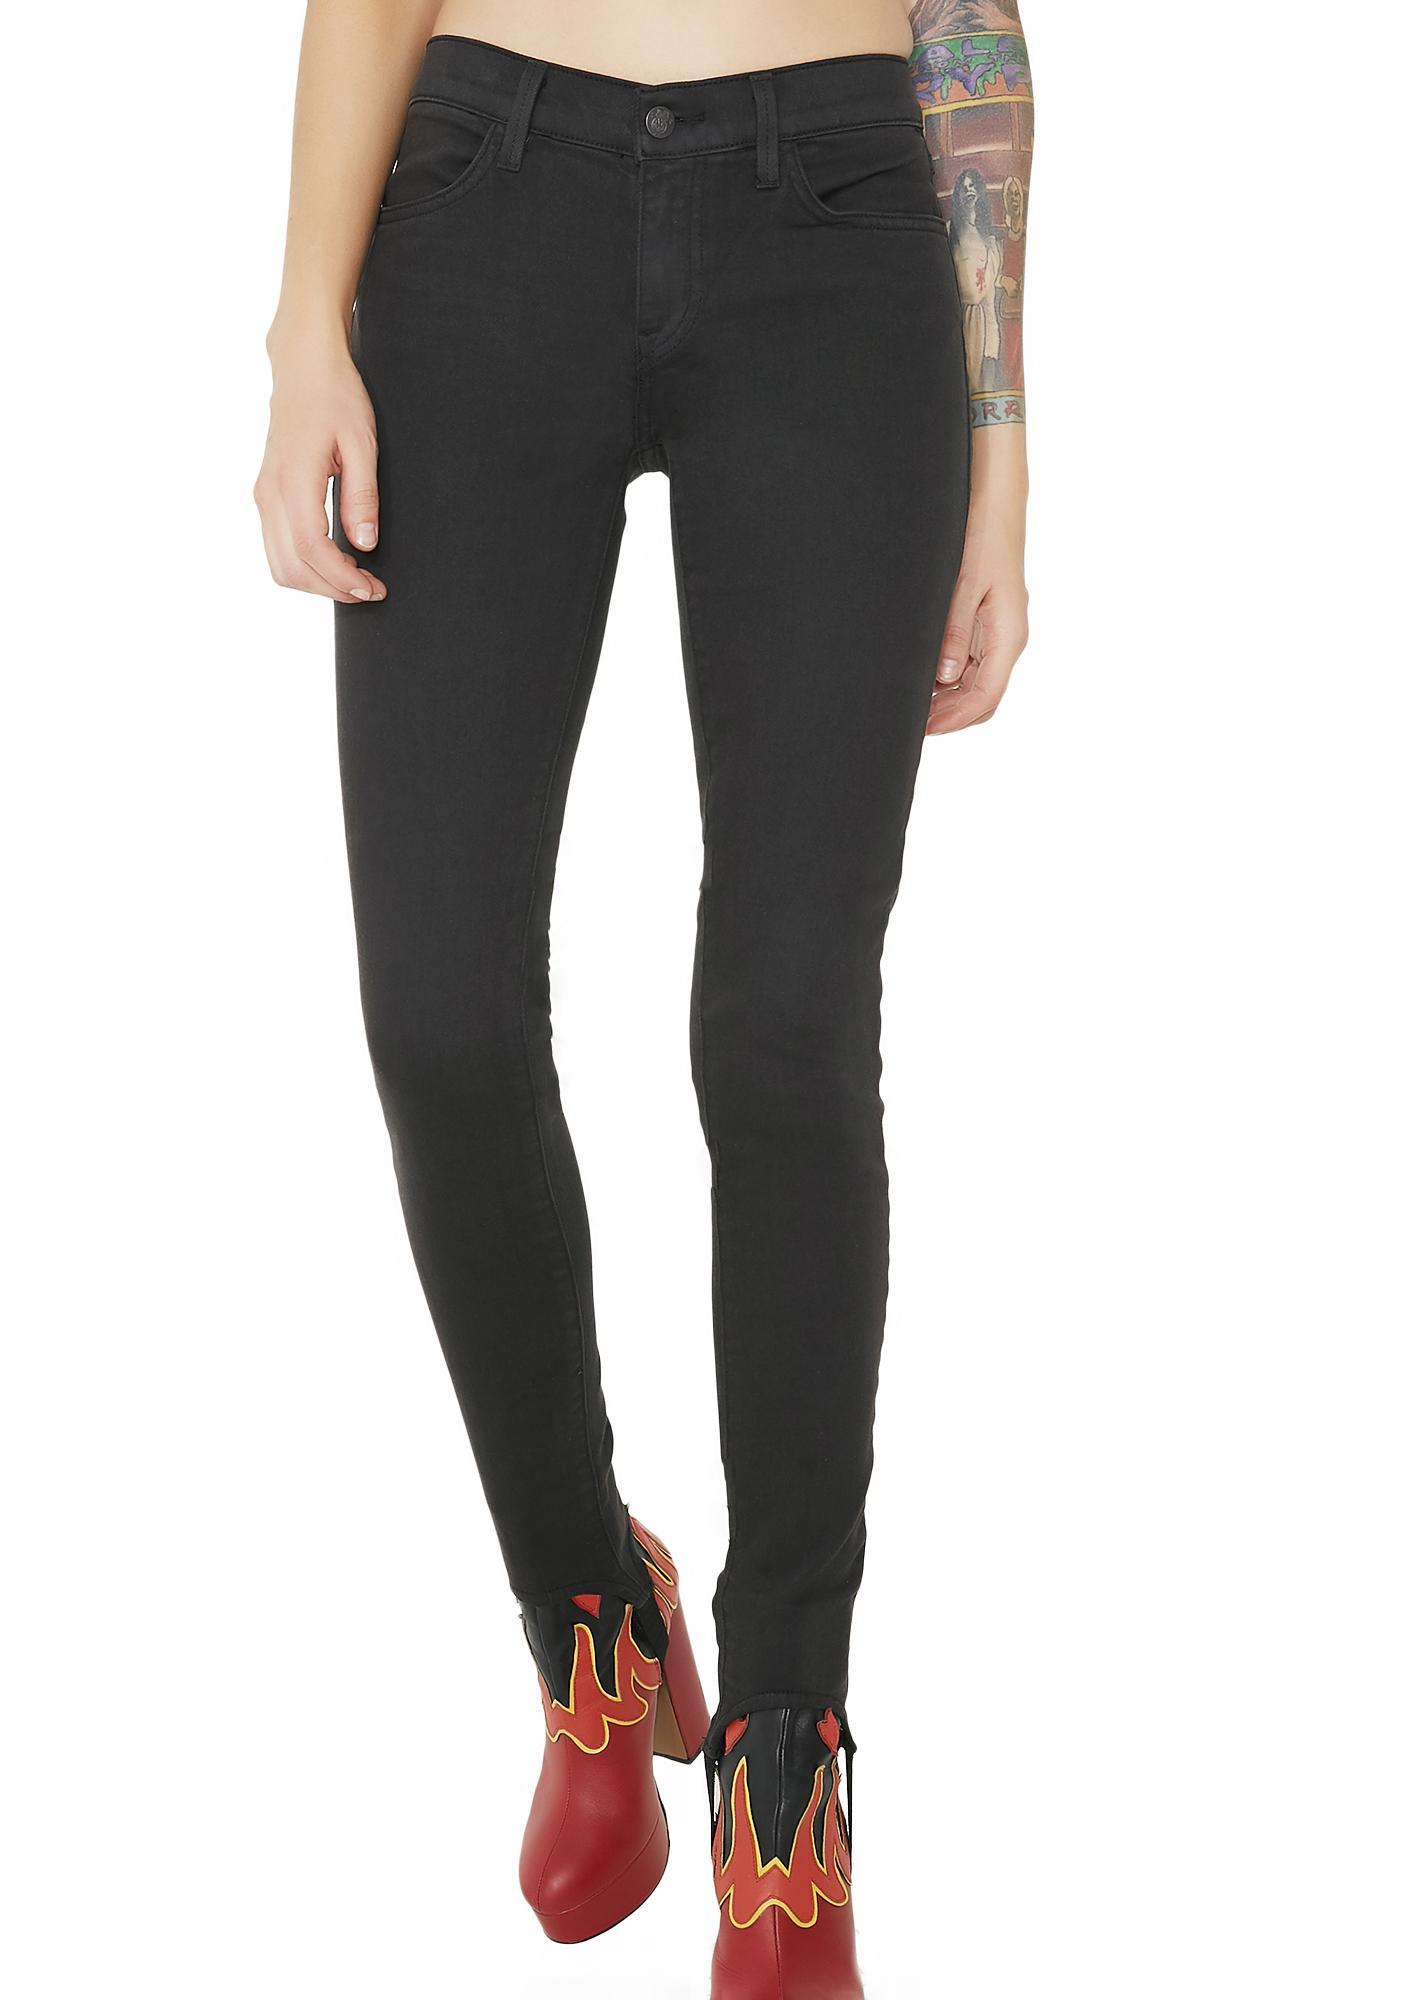 Wildfox Couture Sloane Skinny Stirrup Jeans